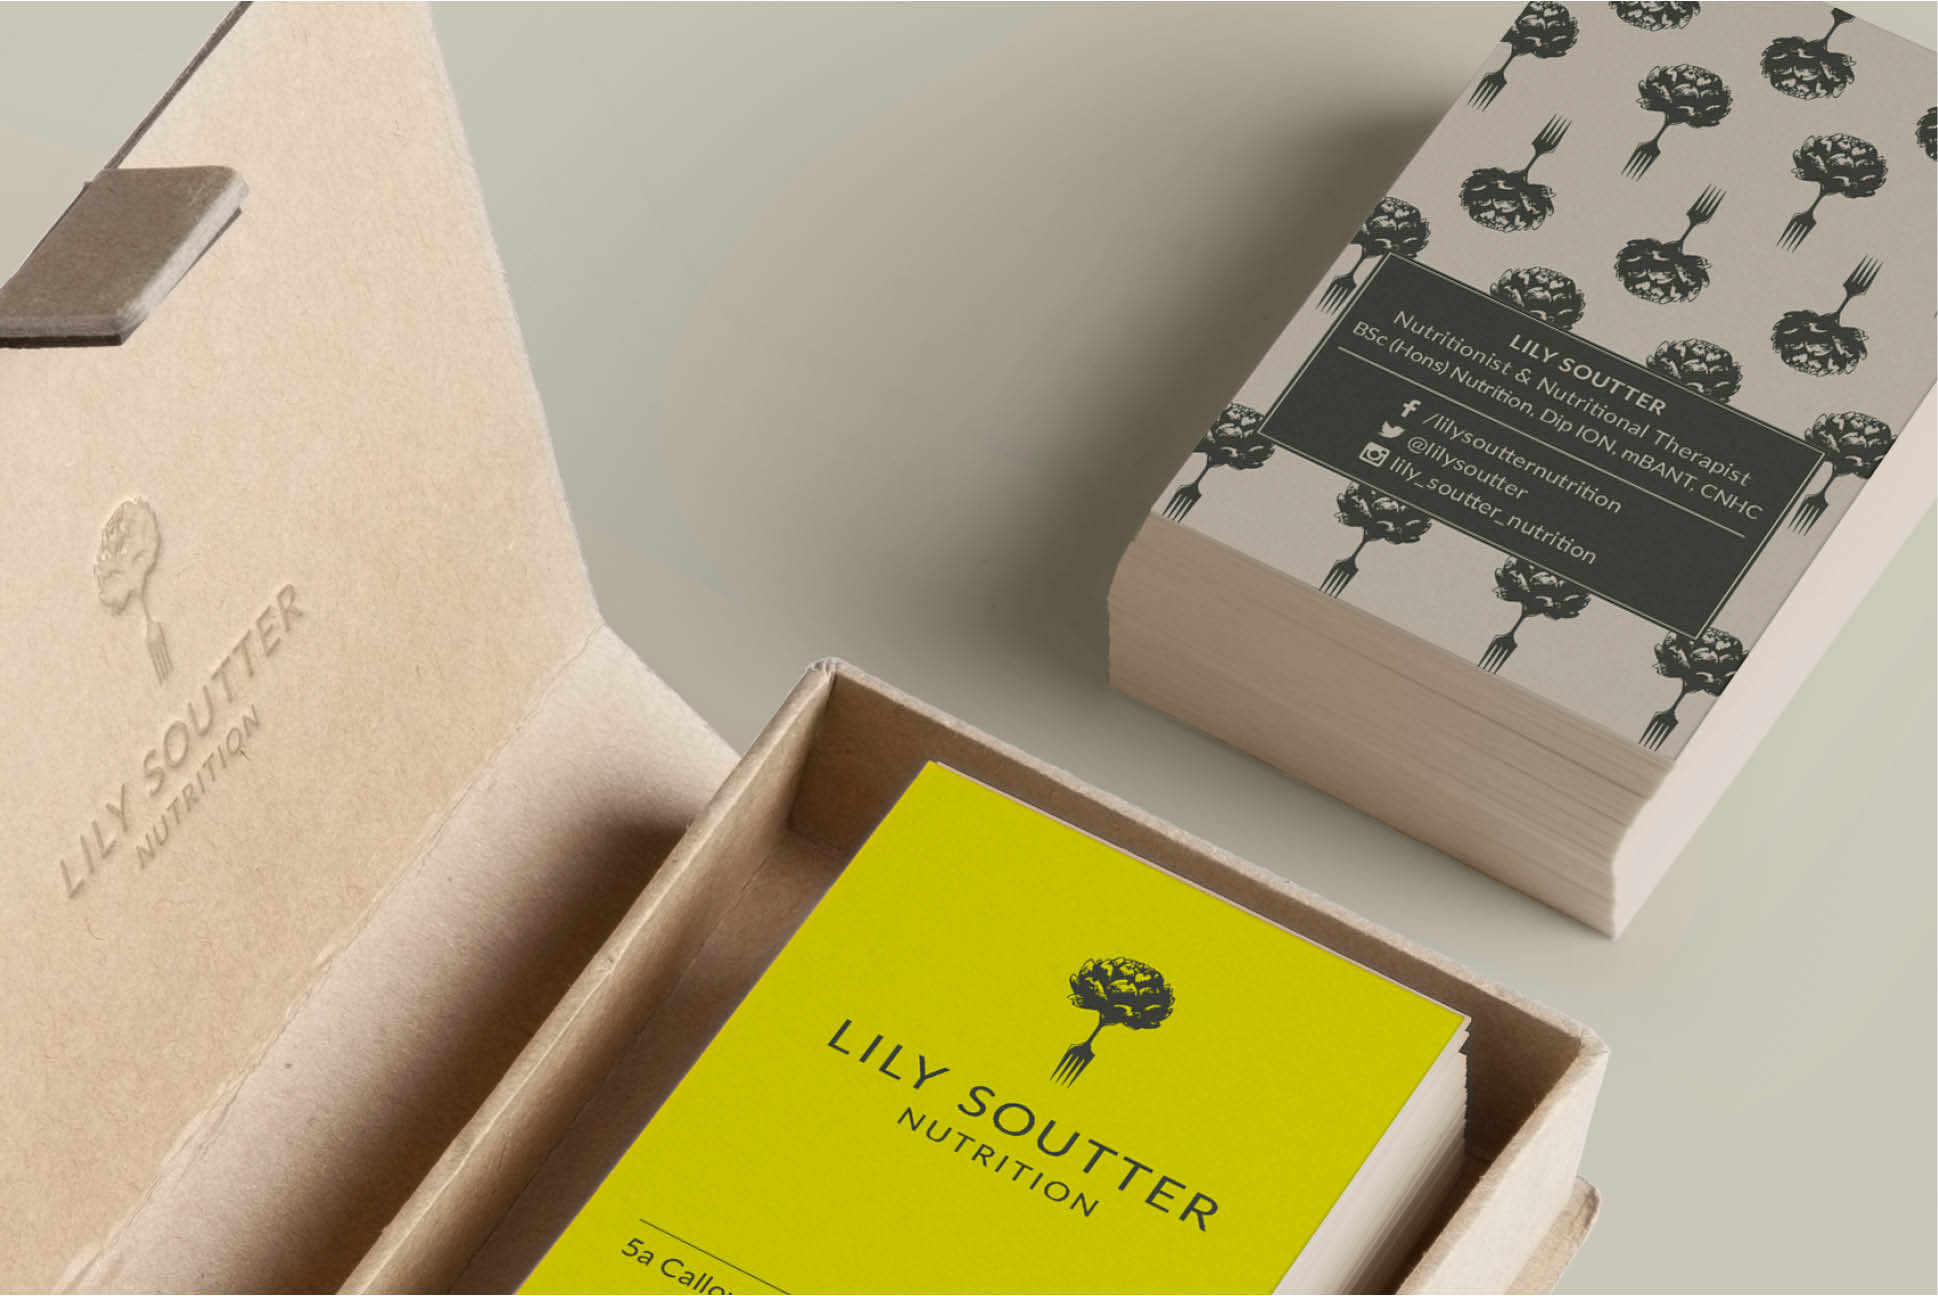 Lily Soutter Business Cards   Branding   Independent Marketing   IM London - London Branding Agency